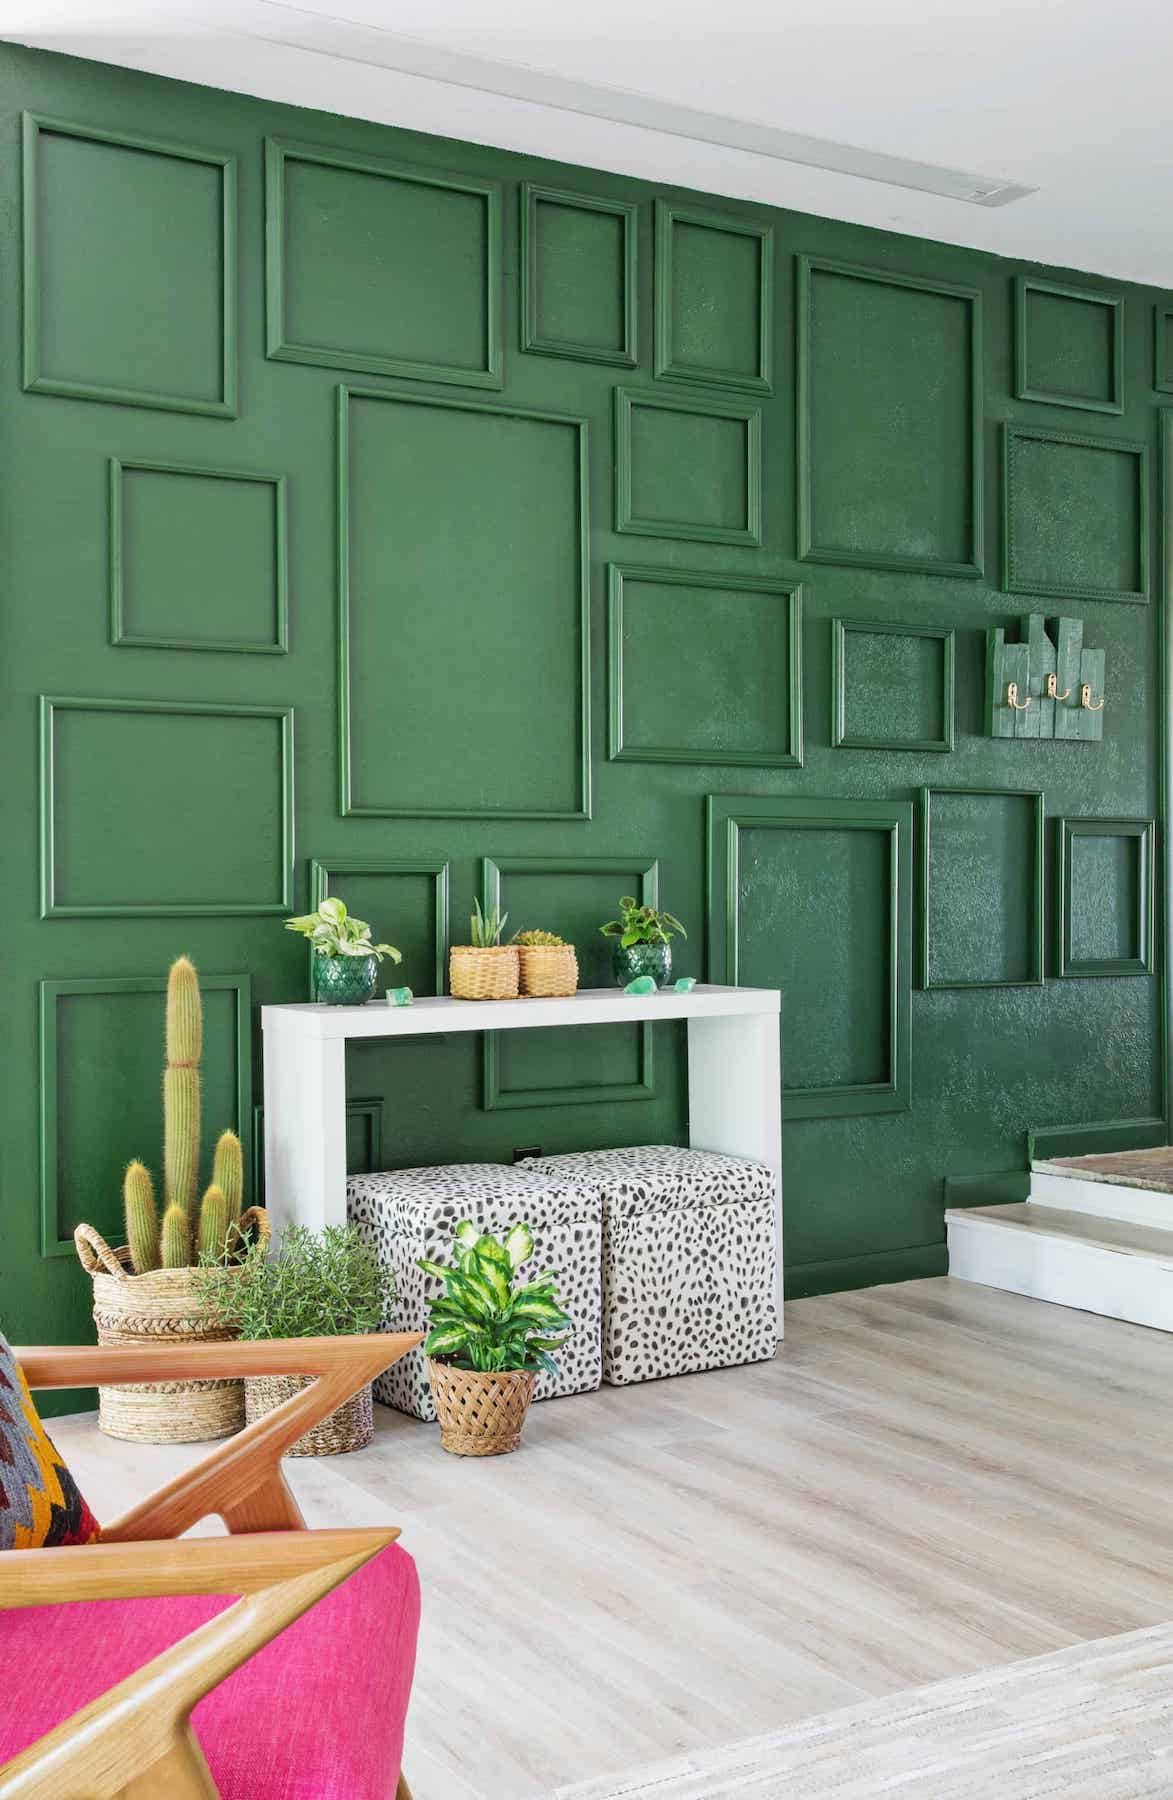 Rental upgrades, green wall with molding